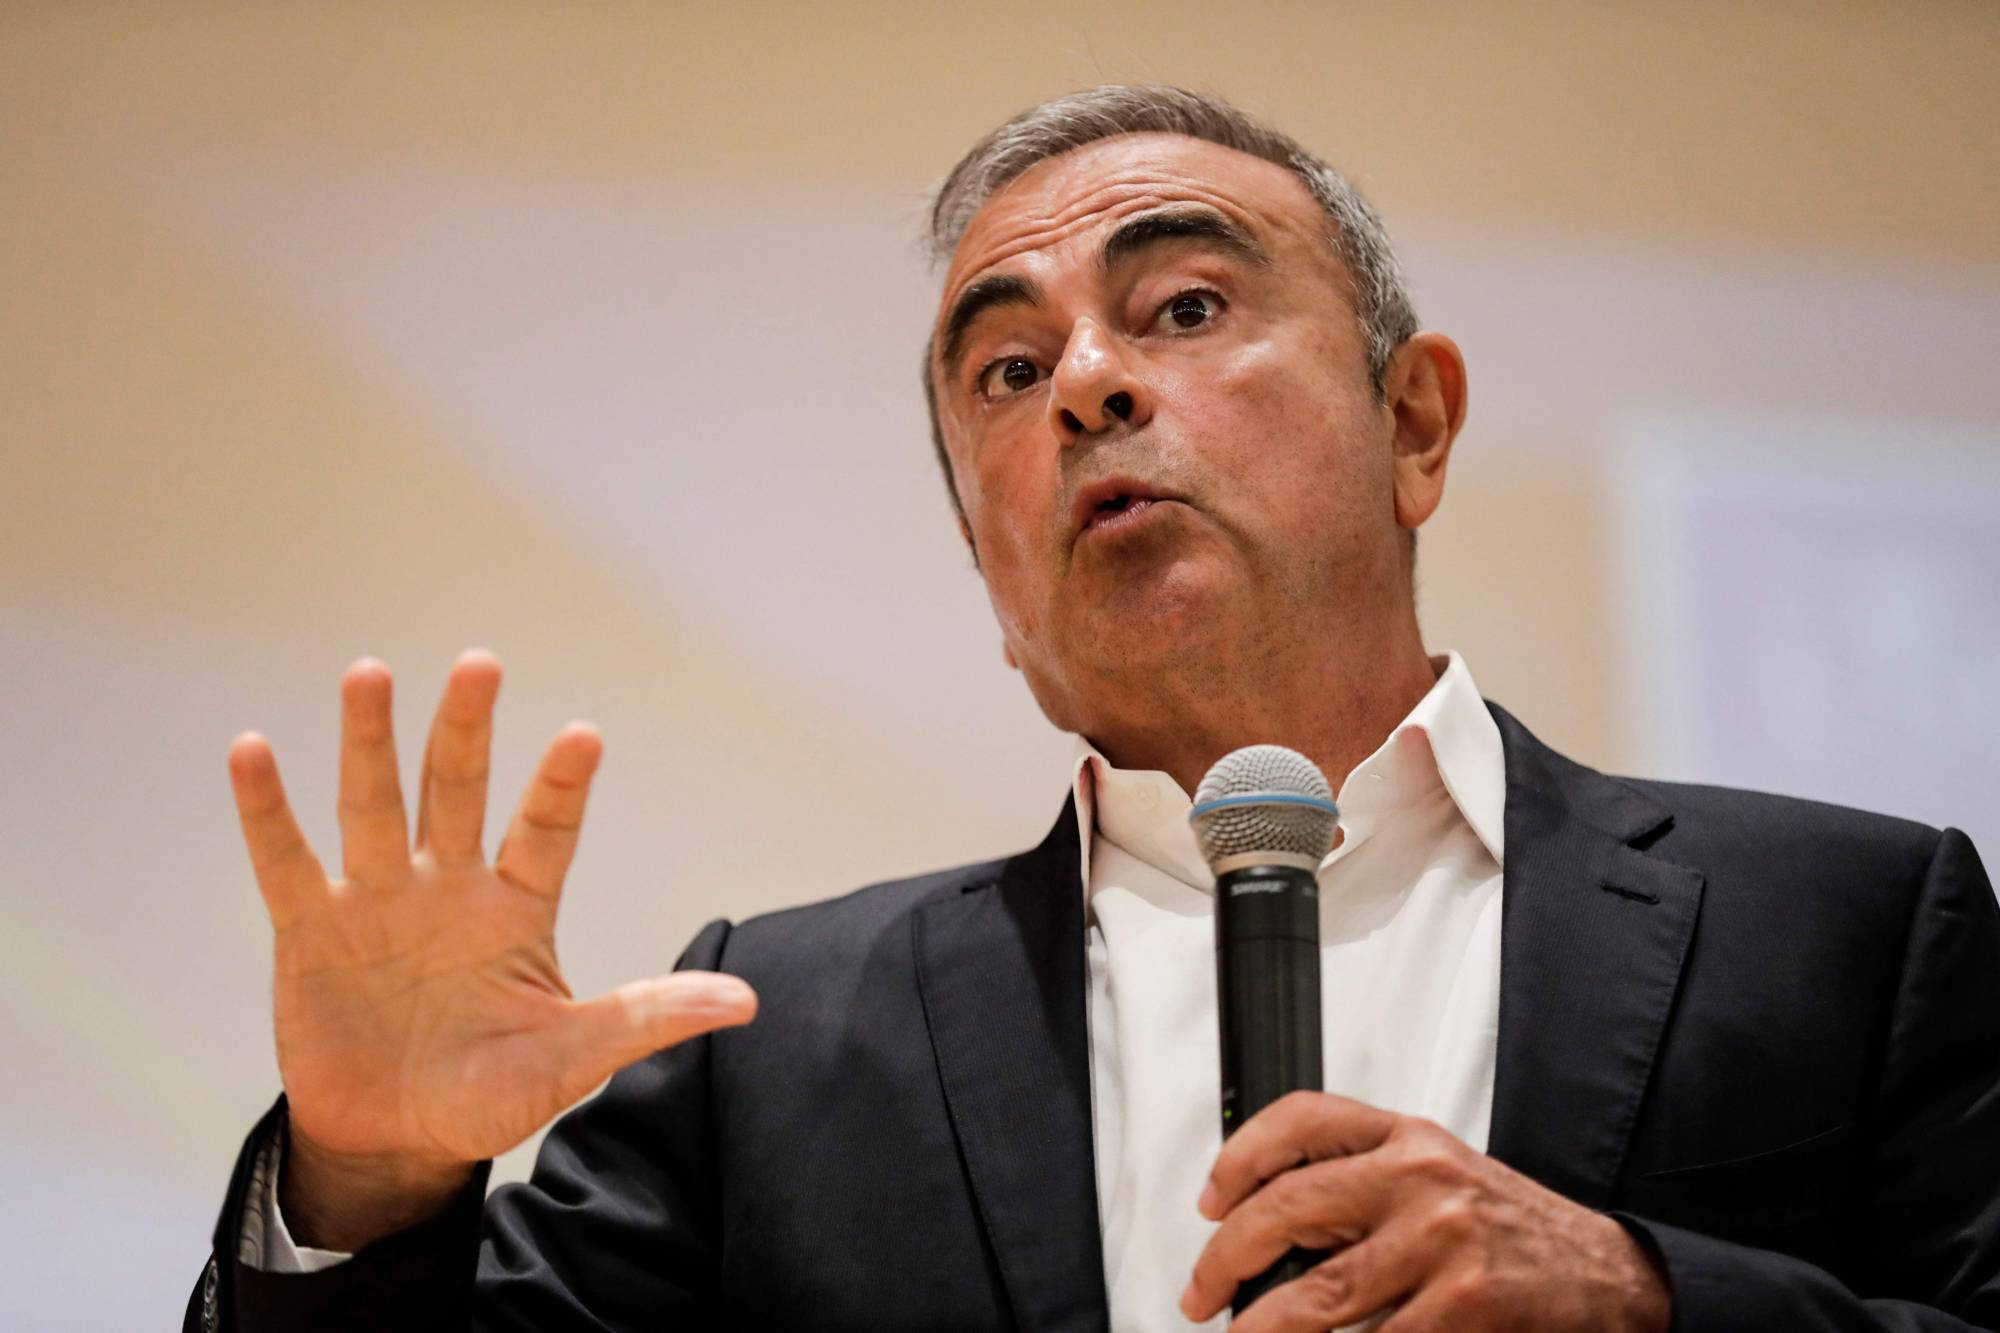 Former Nissan Motor Co. Chairman Carlos Ghosn speaks during a news conference in the northern Lebanese city of Jounieh last September. | AFP-JIJI